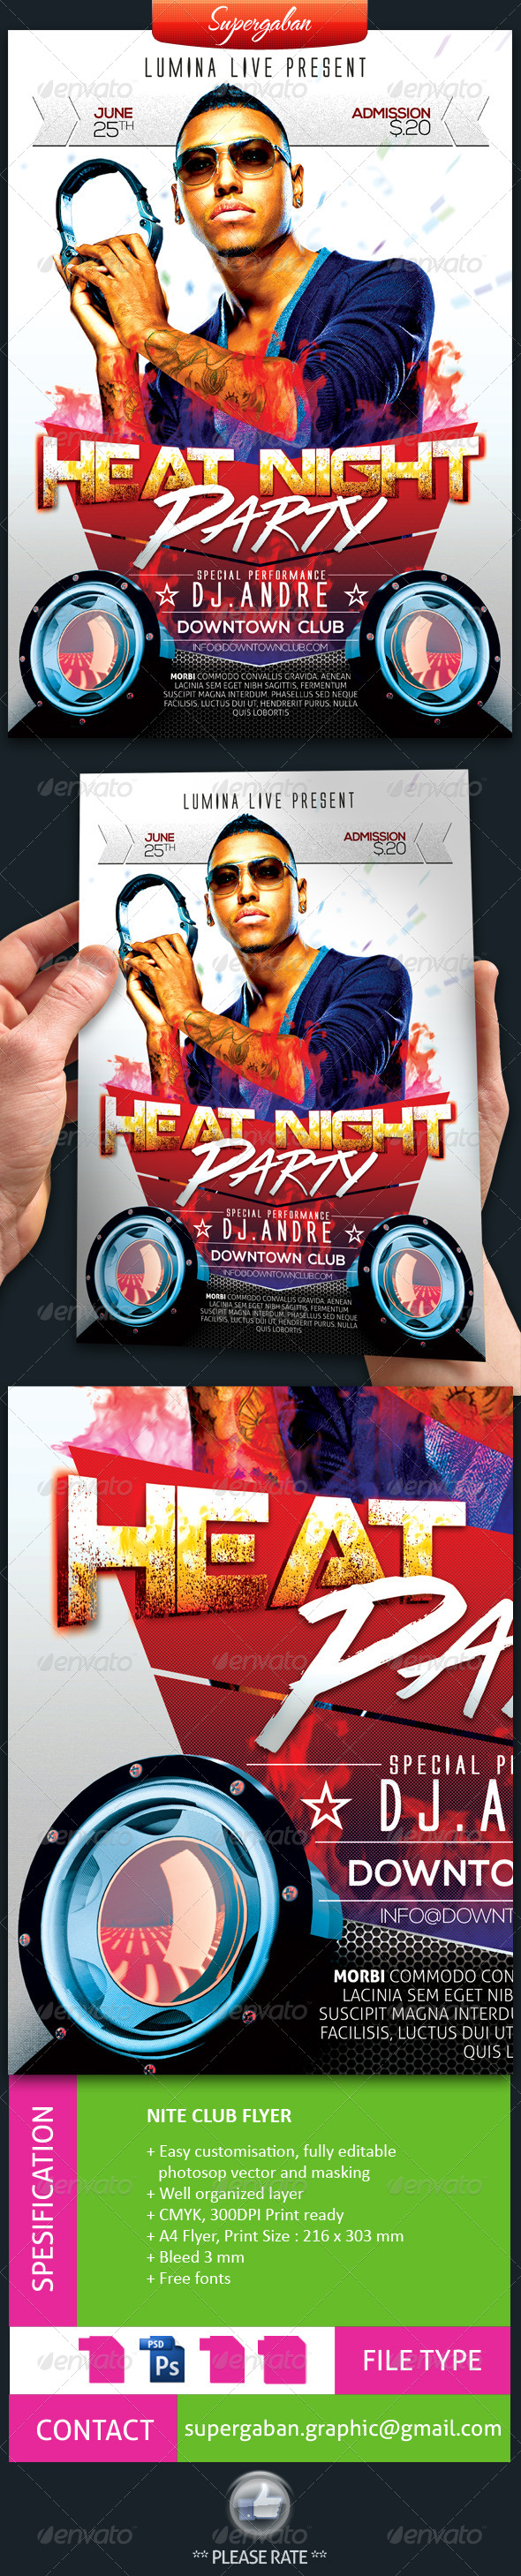 GraphicRiver Nite Club Flyer 7621622